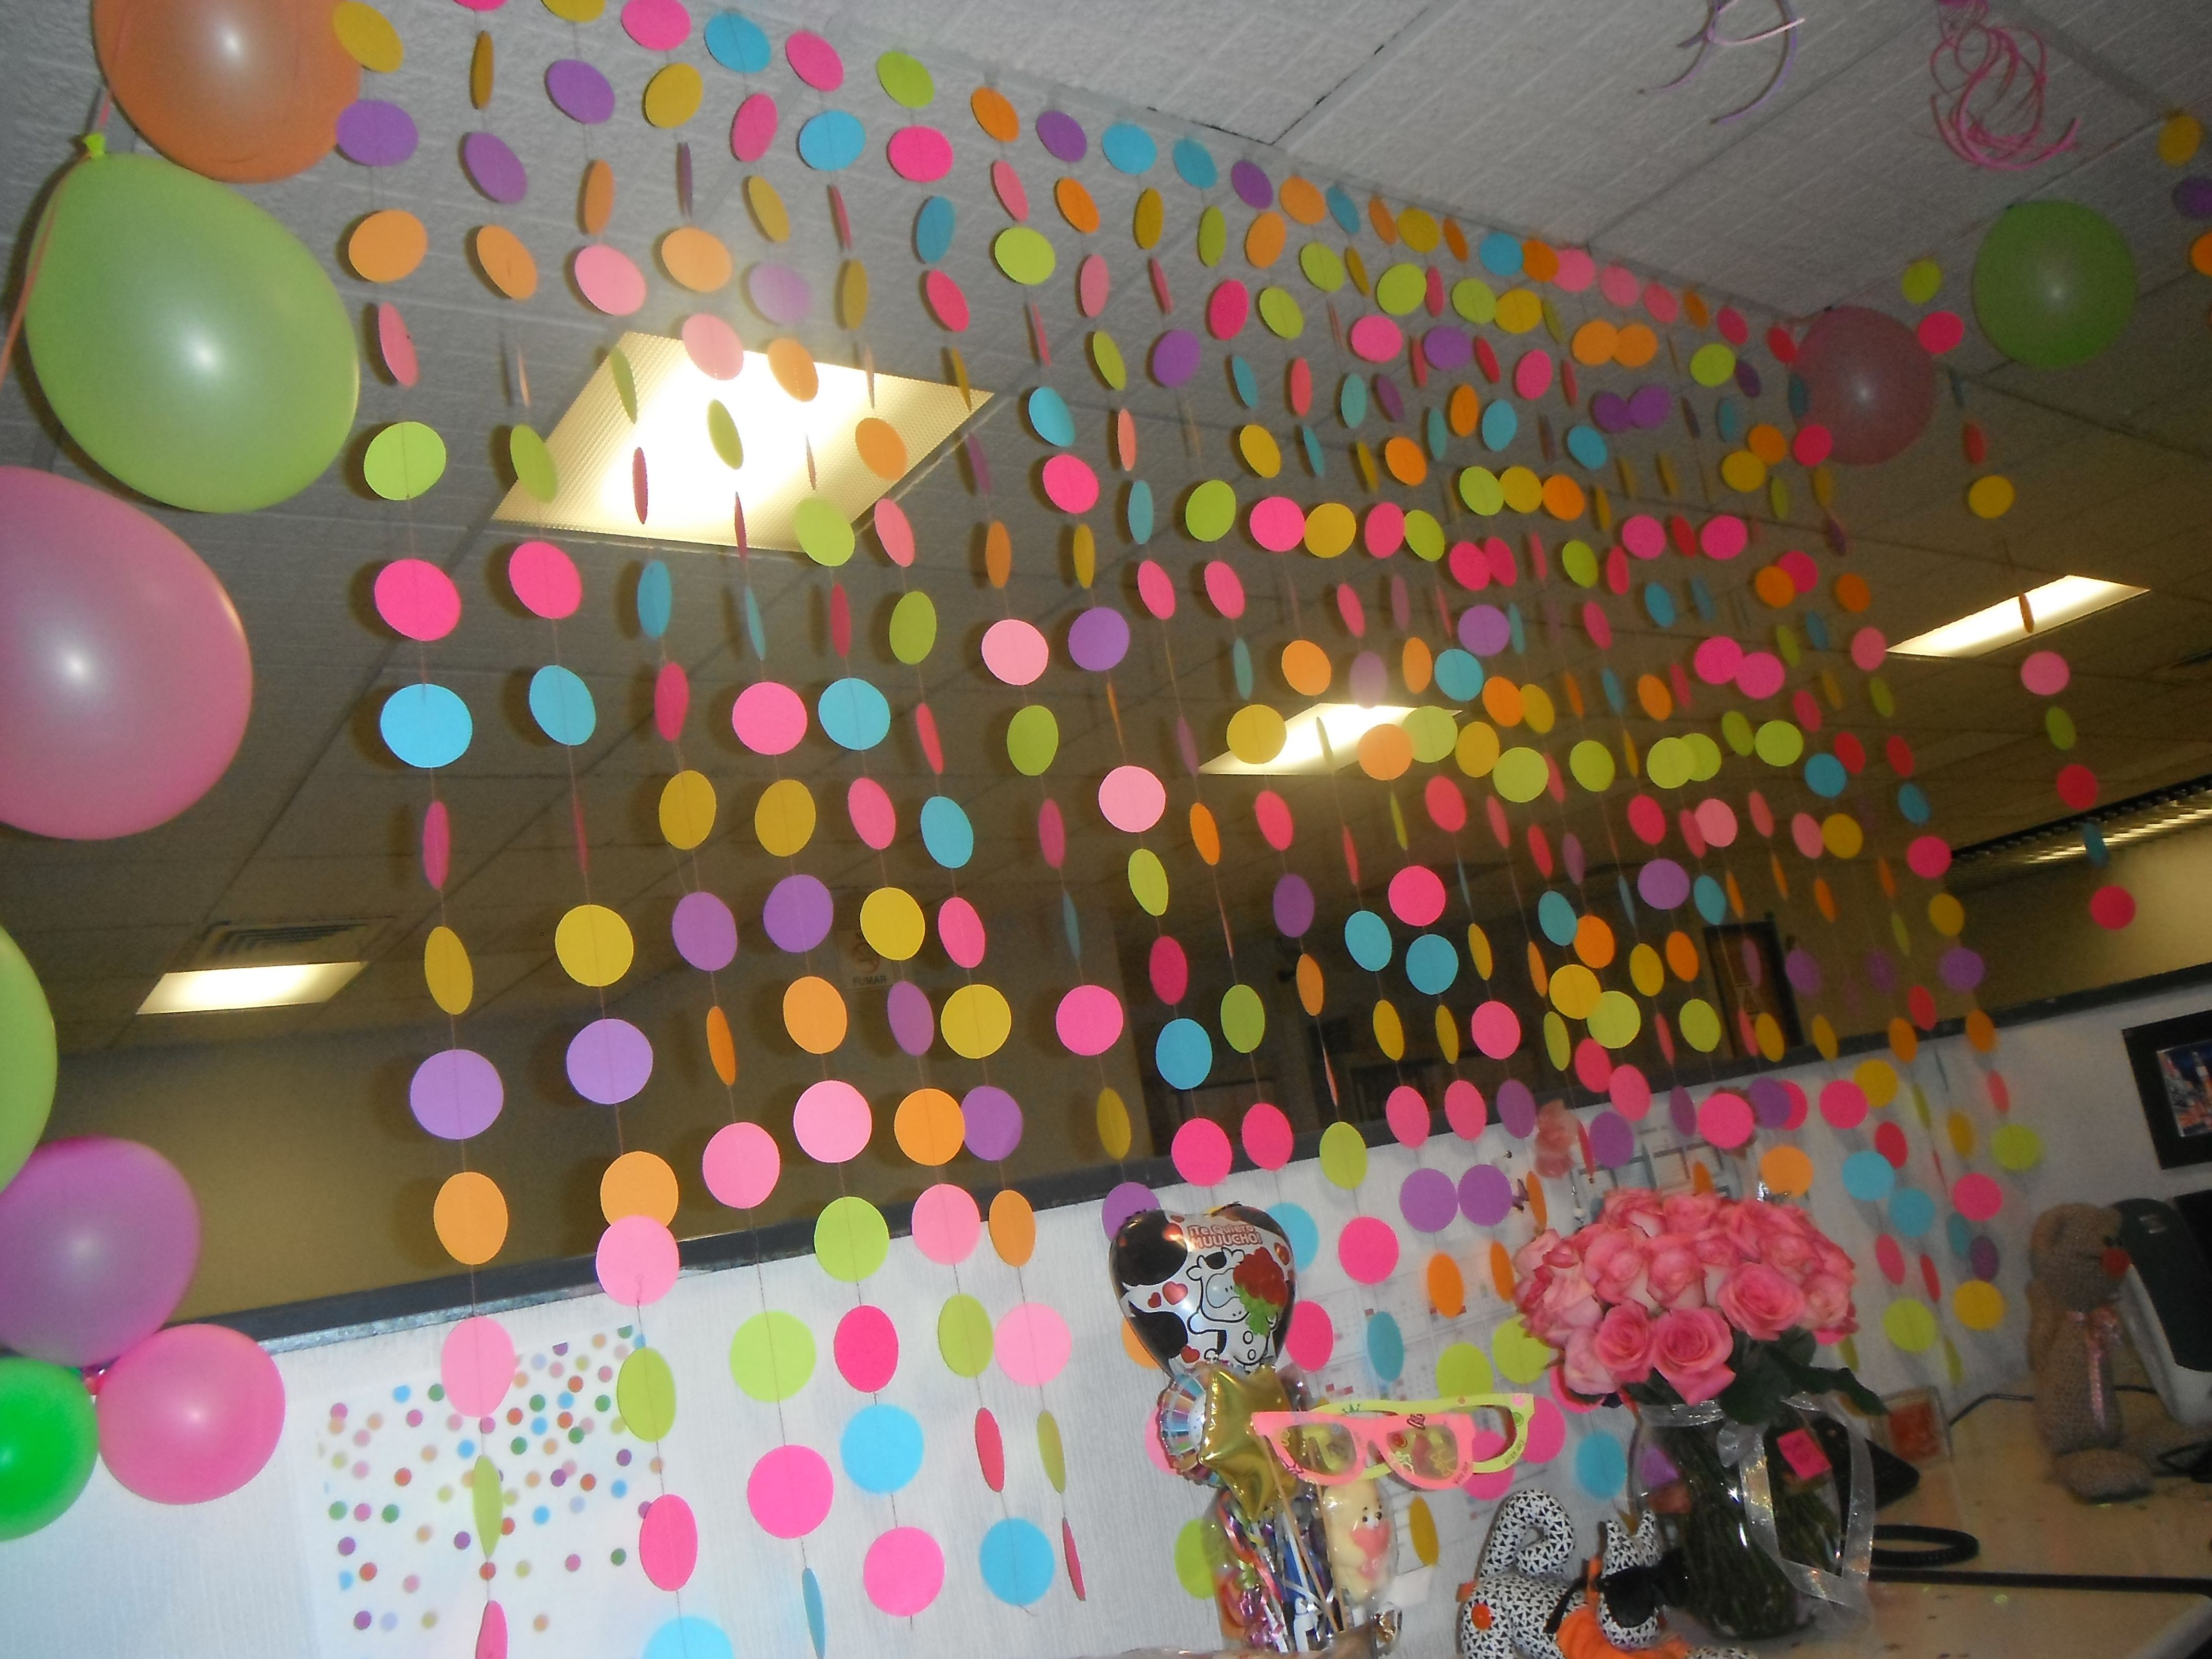 birthday office decorations. resultado de imagen para decoracion cumpleaos ideas parahappy brithdaycubicle makeoveroffice cubicleoffice decorationsbirthday birthday office decorations